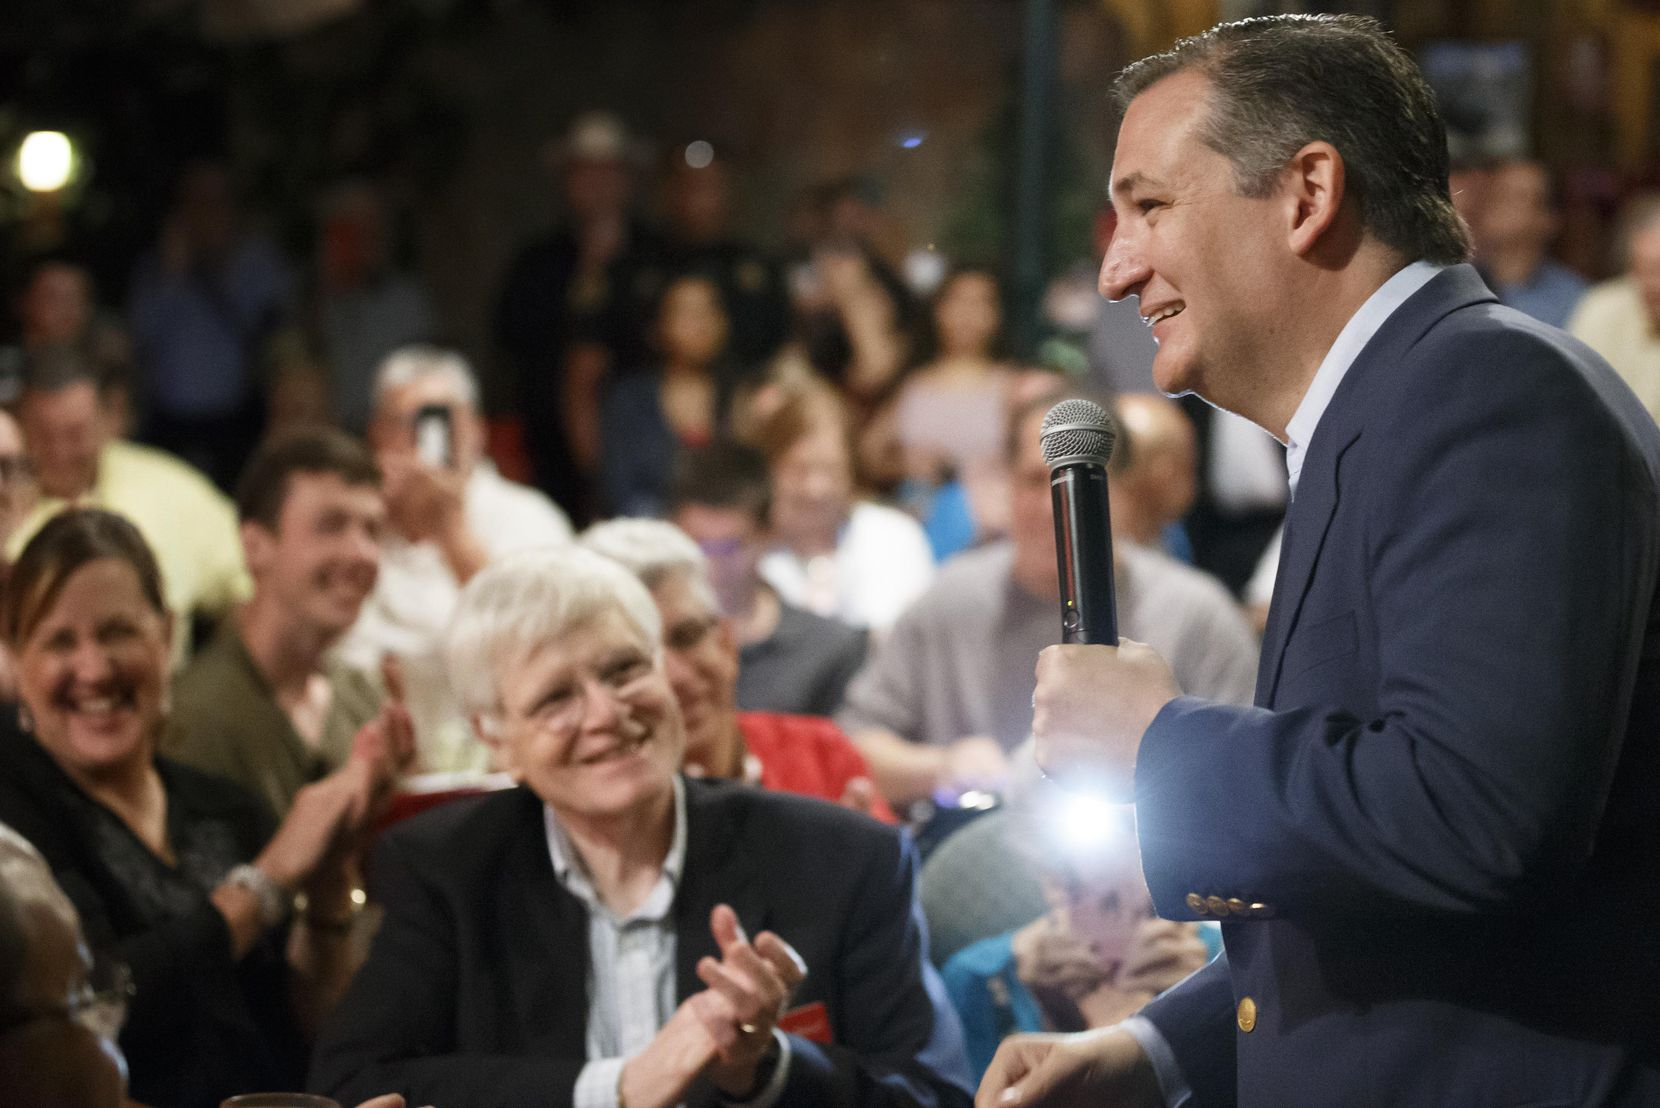 Sen. Ted Cruz addresses supporters during a campaign event at Babes Chicken Dinner House on Tuesday, Aug. 14, in Arlington.